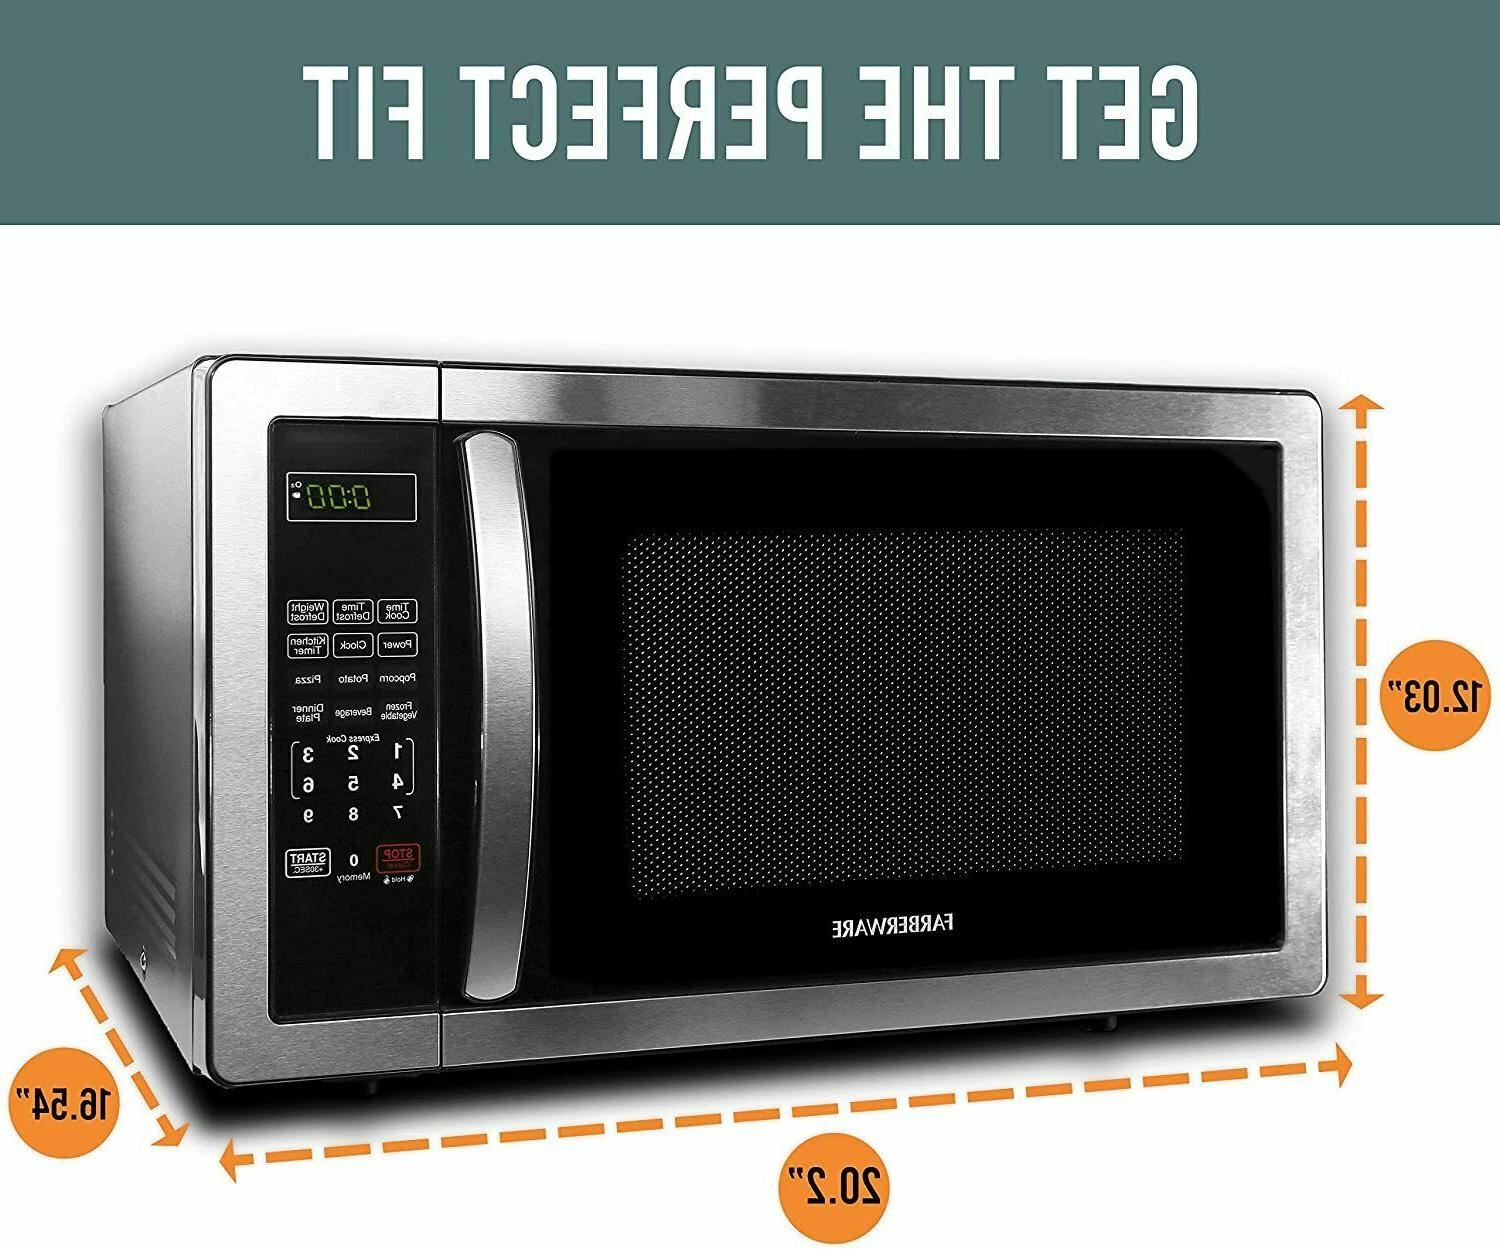 Farberware 1.1 Ft. Stainless Steel Microwave Oven 1000W,